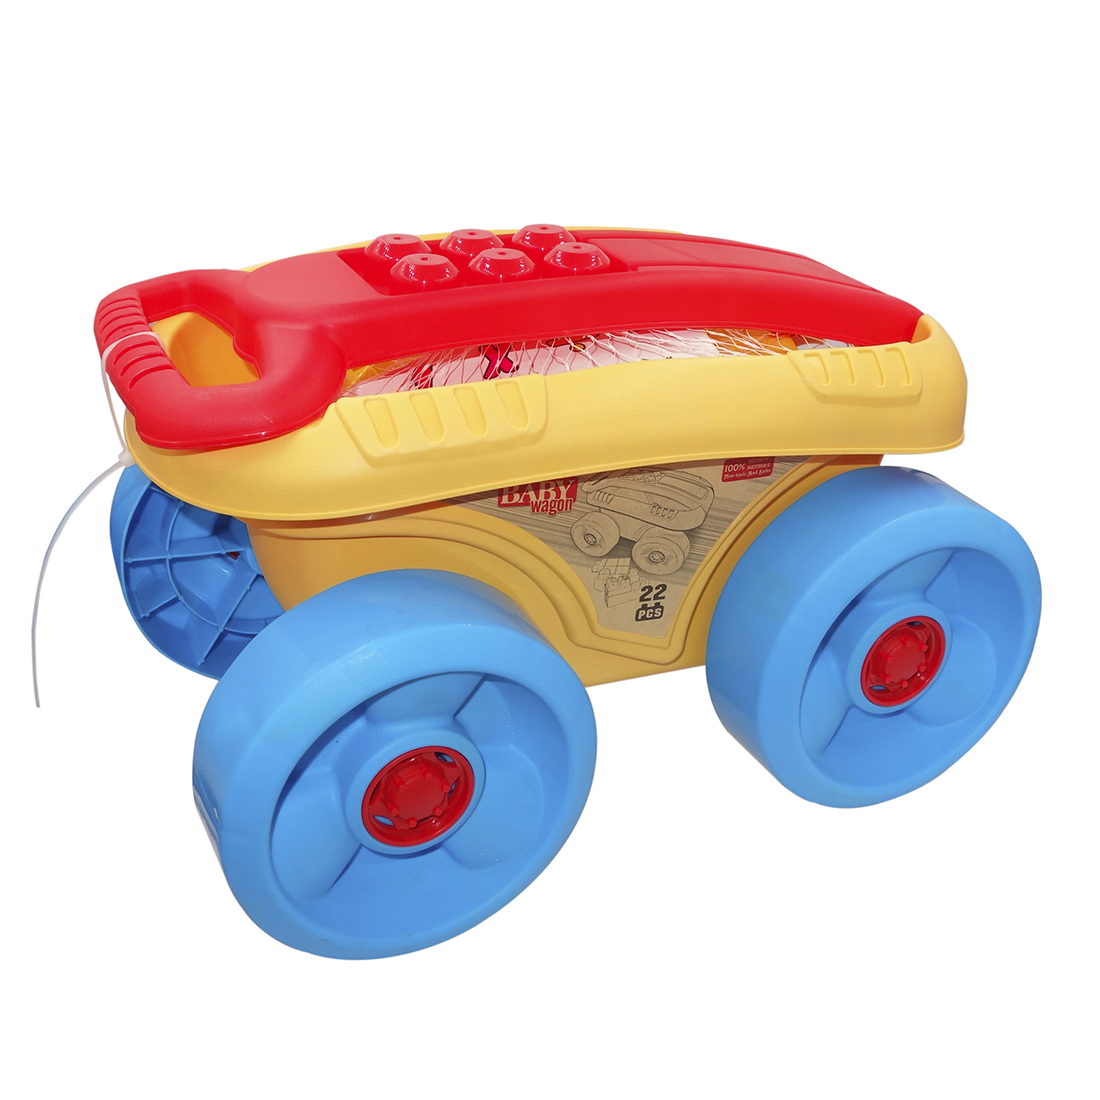 22Pcs Outdoor Children Beach Toys Sand Wagon Toys Playset For Kids Kids Baby Beach Sand Toys Set  (Parts Random Color)